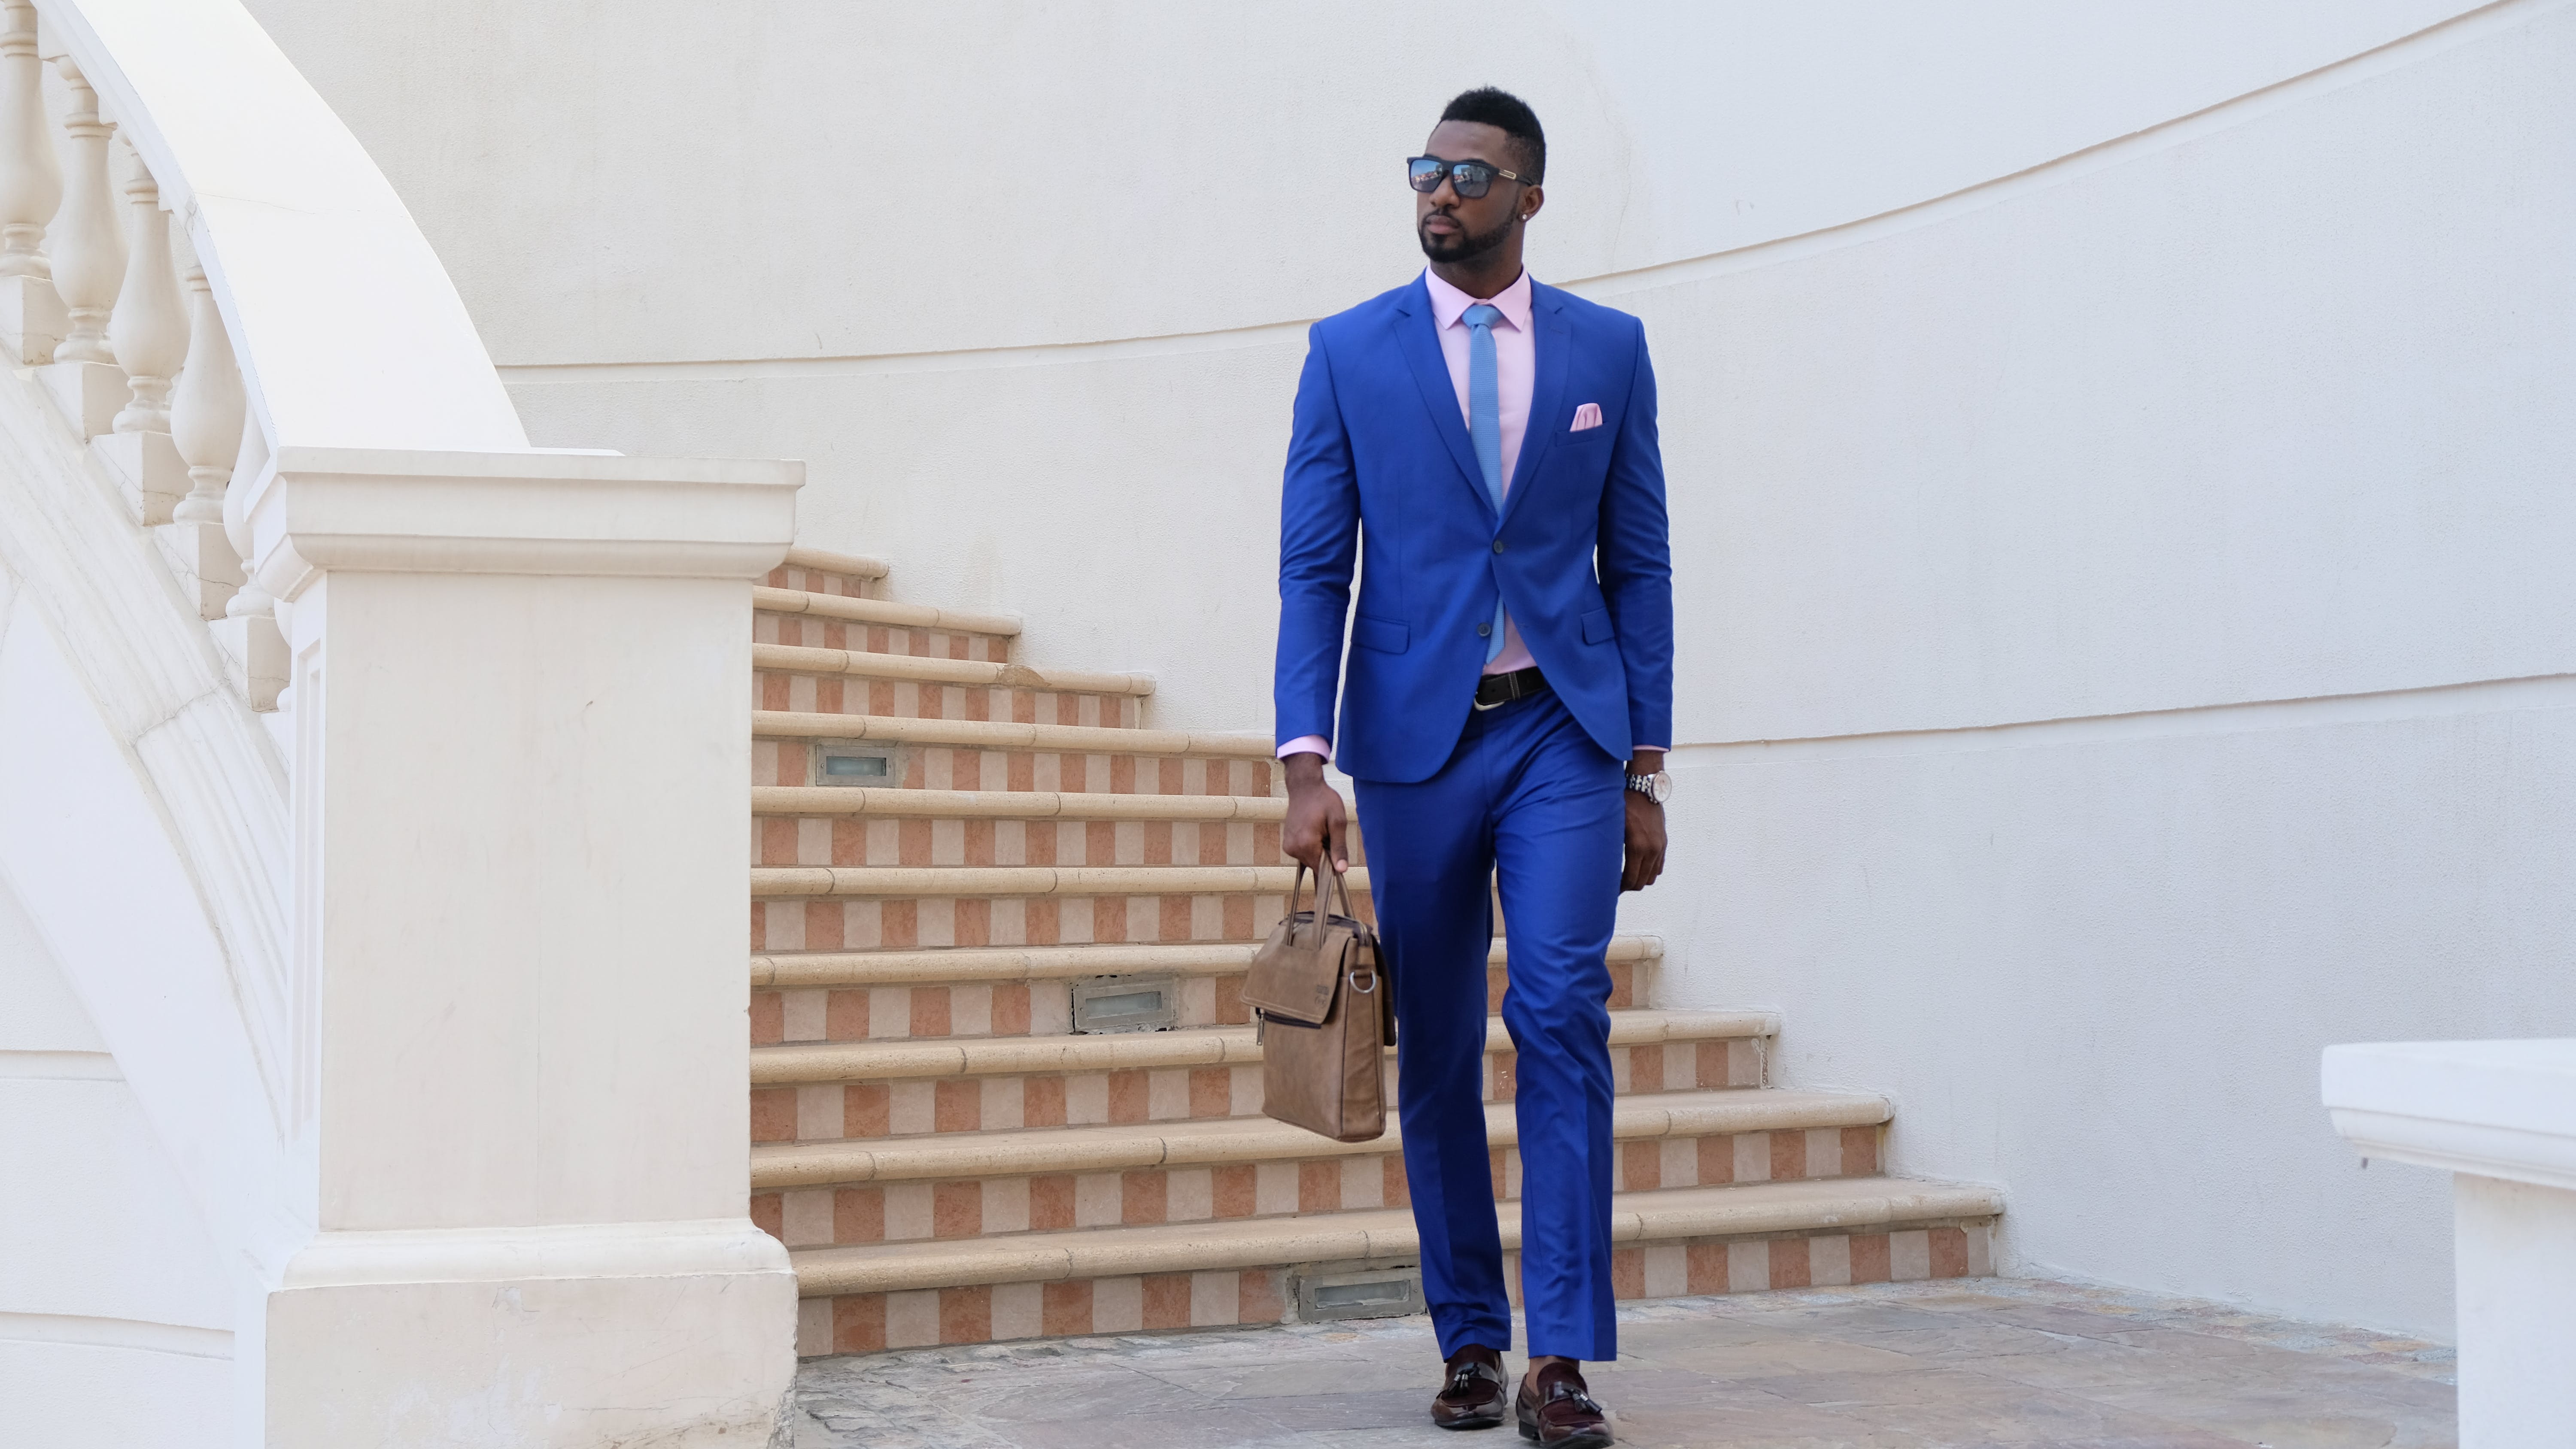 Free stock photo of stairs, fashion, man, person